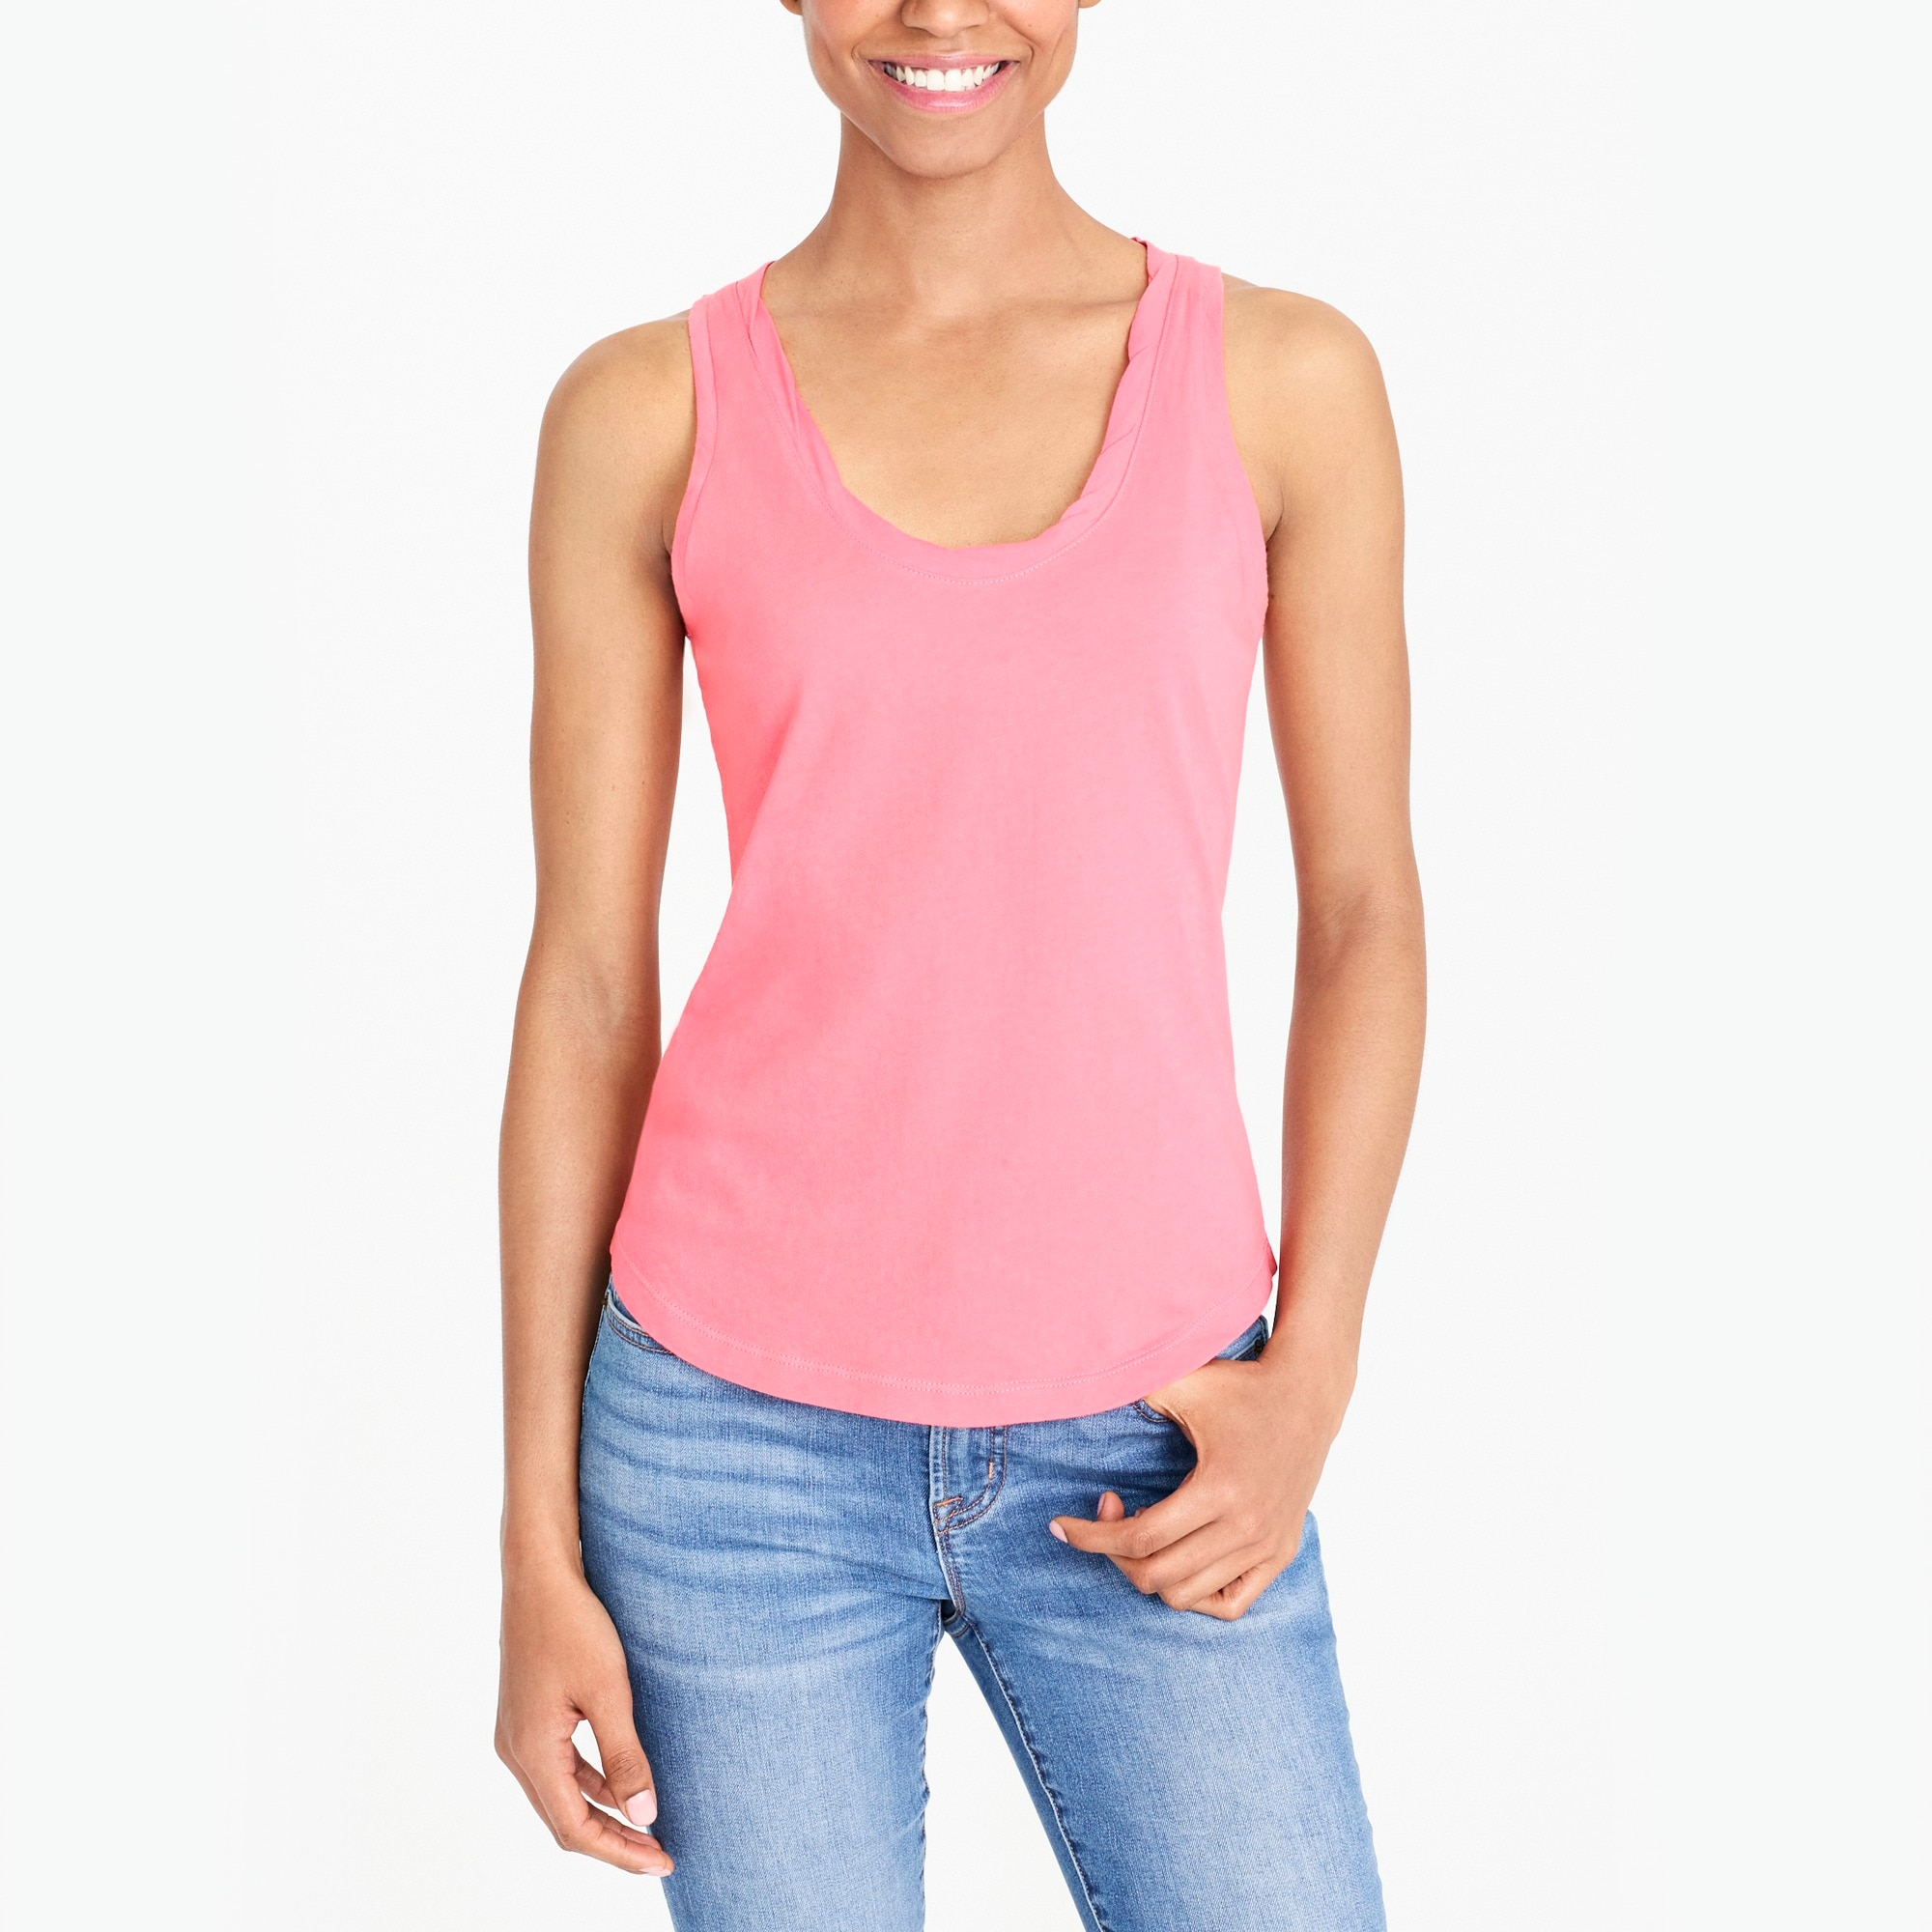 J.Crew Mercantile tissue tank top